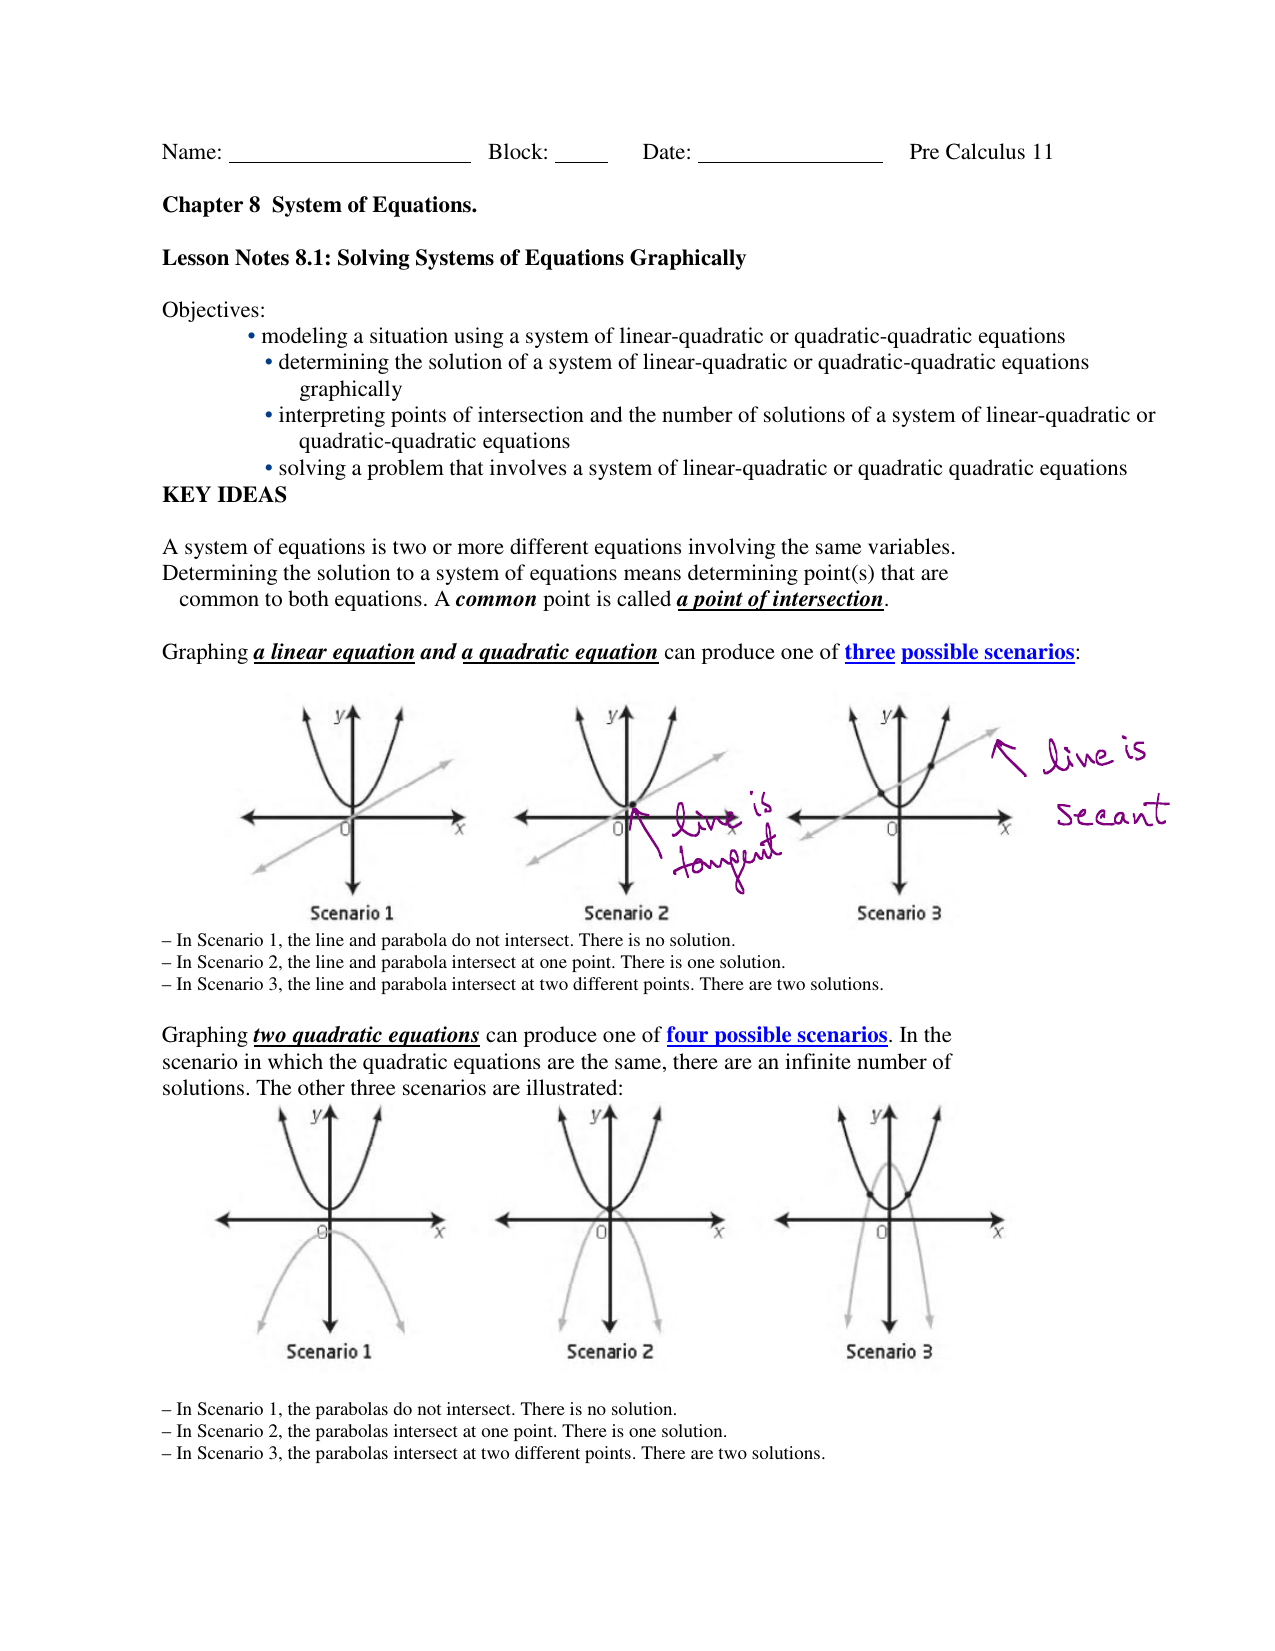 sec 8.1 solving systems of equations graphically